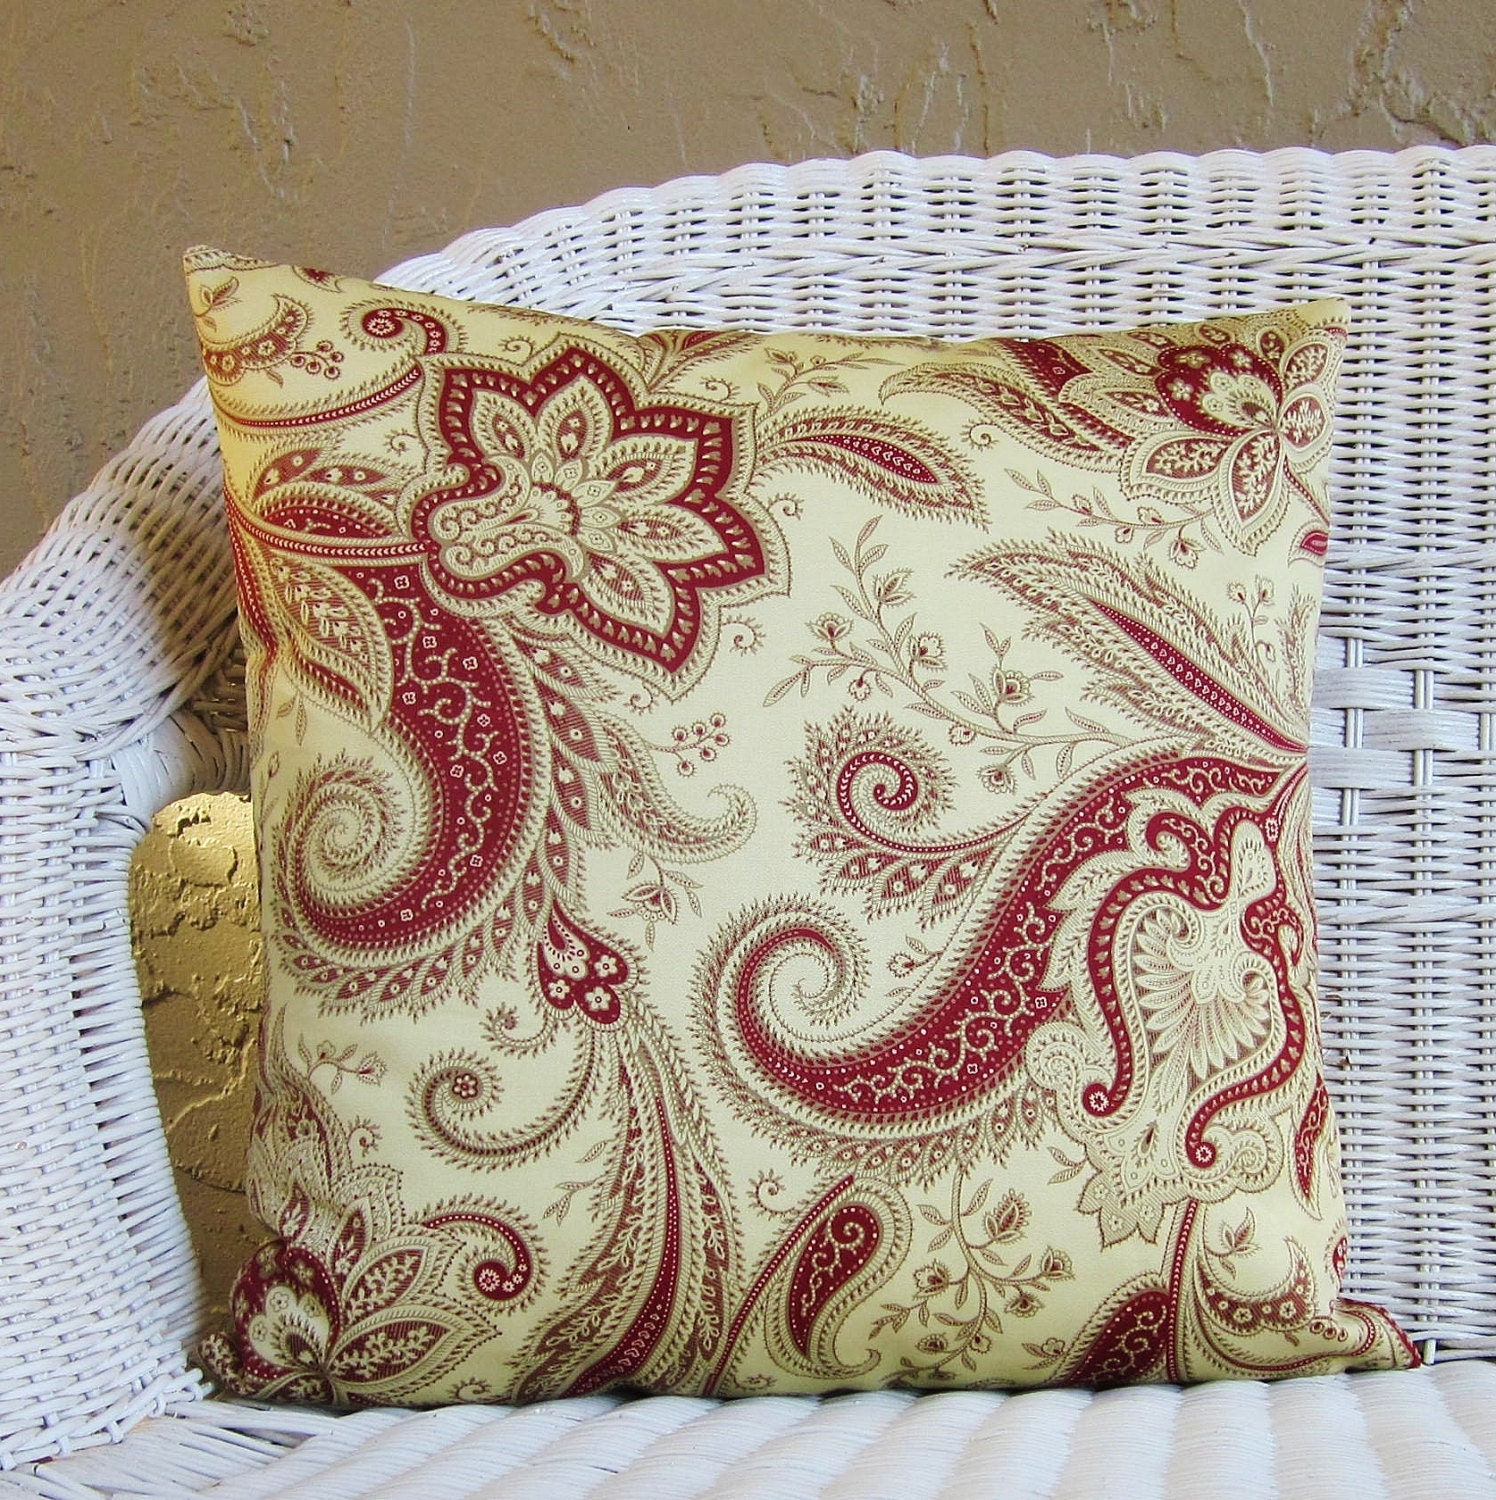 Jacobean Decorative Pillows : Burgundy Crimson Red Jacobean Floral Pillow Cover Decorative